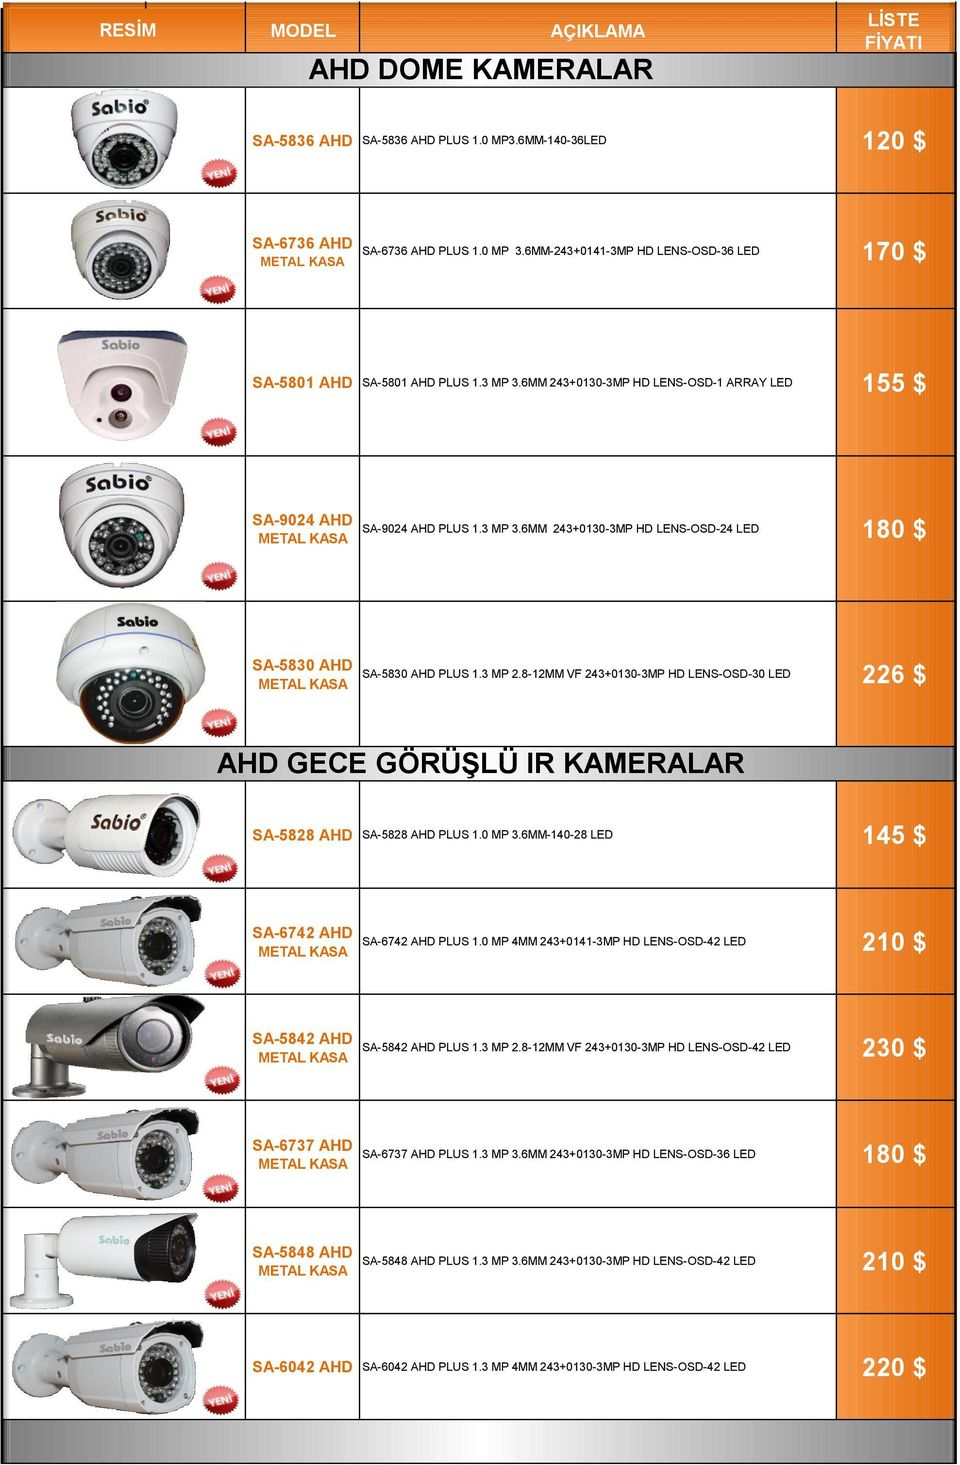 3 MP 2.8-12MM VF 243+0130-3MP HD LENS-OSD-30 LED 226 $ AHD GECE GÖRÜŞLÜ IR KAMERALAR SA-5828 AHD SA-5828 AHD PLUS 1.0 MP 3.6MM-140-28 LED 145 $ SA-6742 AHD METAL KASA SA-6742 AHD PLUS 1.